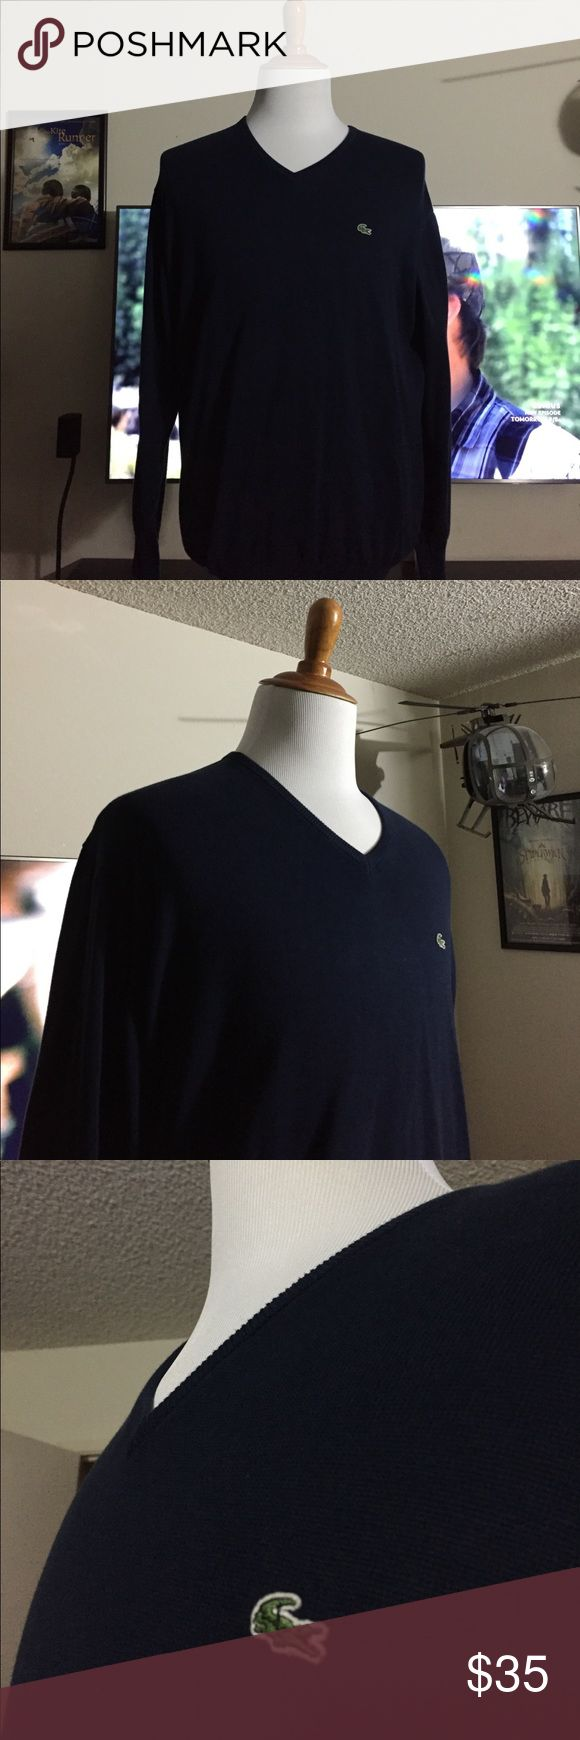 LACOSTE MENS V NECK SWEATER LARGE 5 L AUTHENTIC LACOSTE SIZE 5 BLUE SWEATER. Bundle to save with shipping. Lacoste Sweaters V-Neck